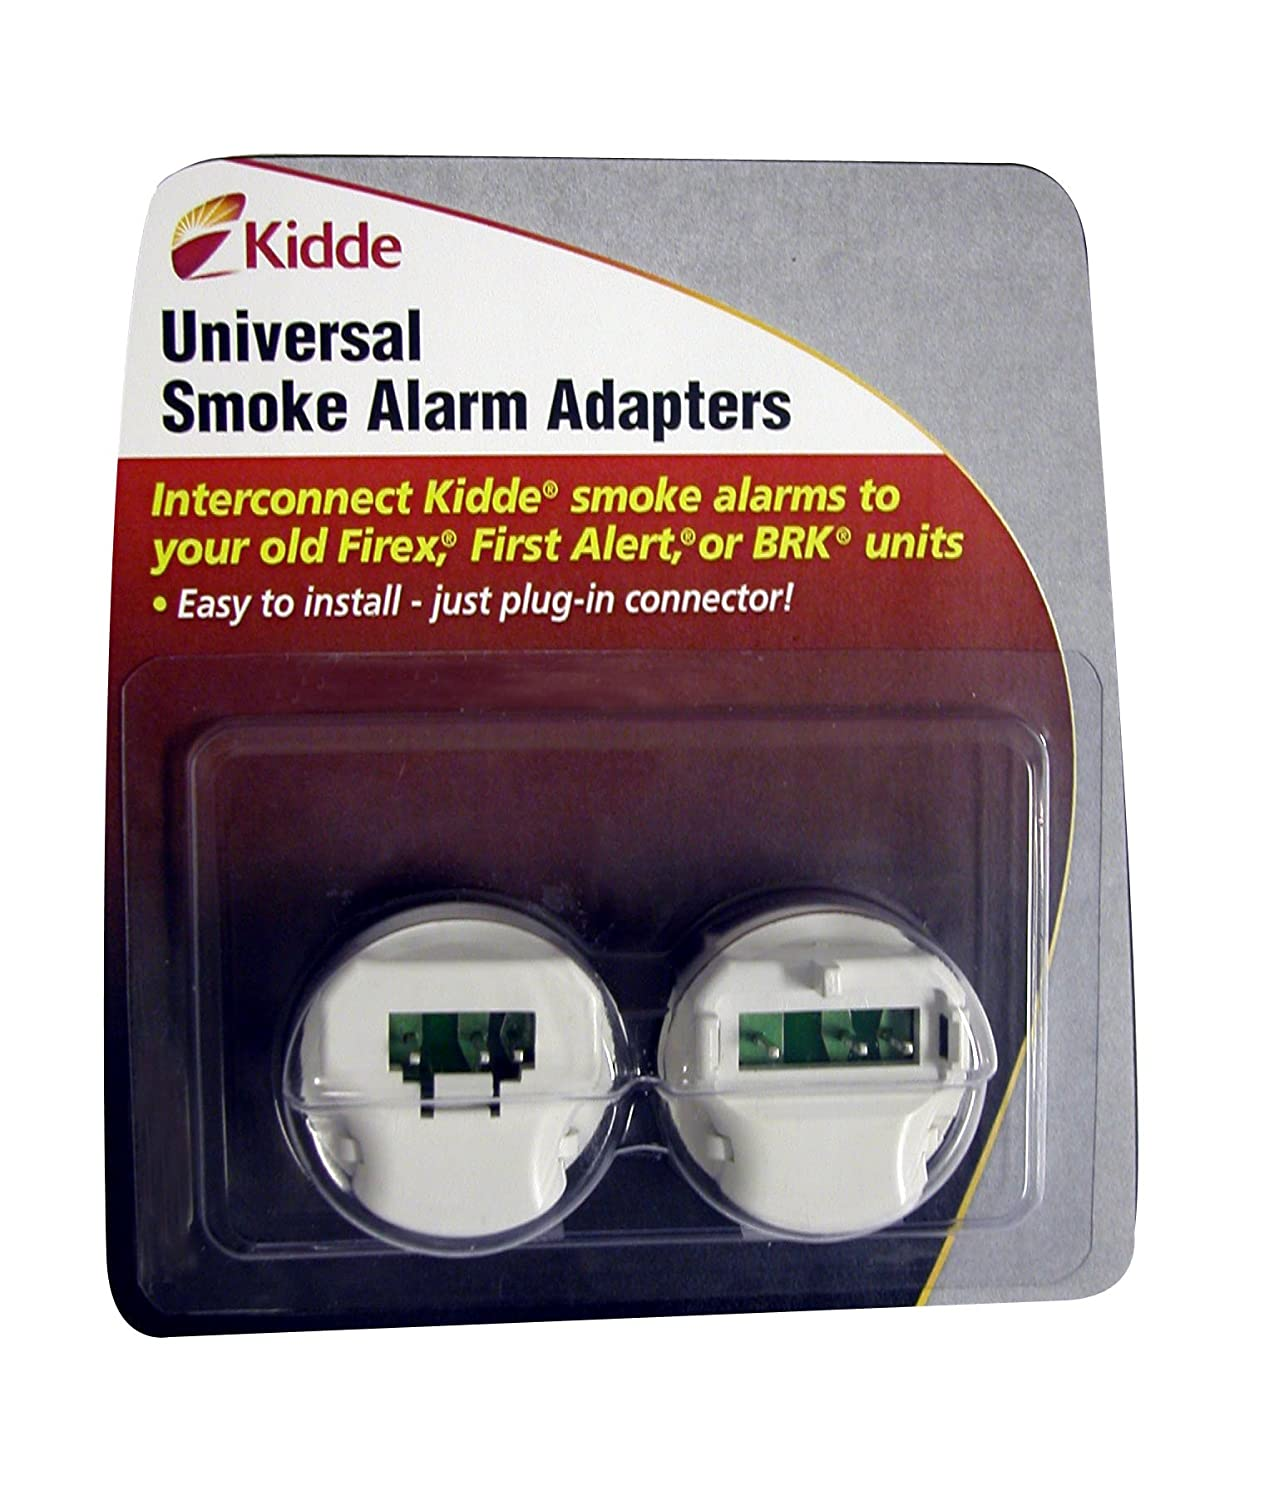 814Se4H5loL._SL1500_ kidde ka b, ka f universal smoke alarm adapters, 2 different units  at n-0.co